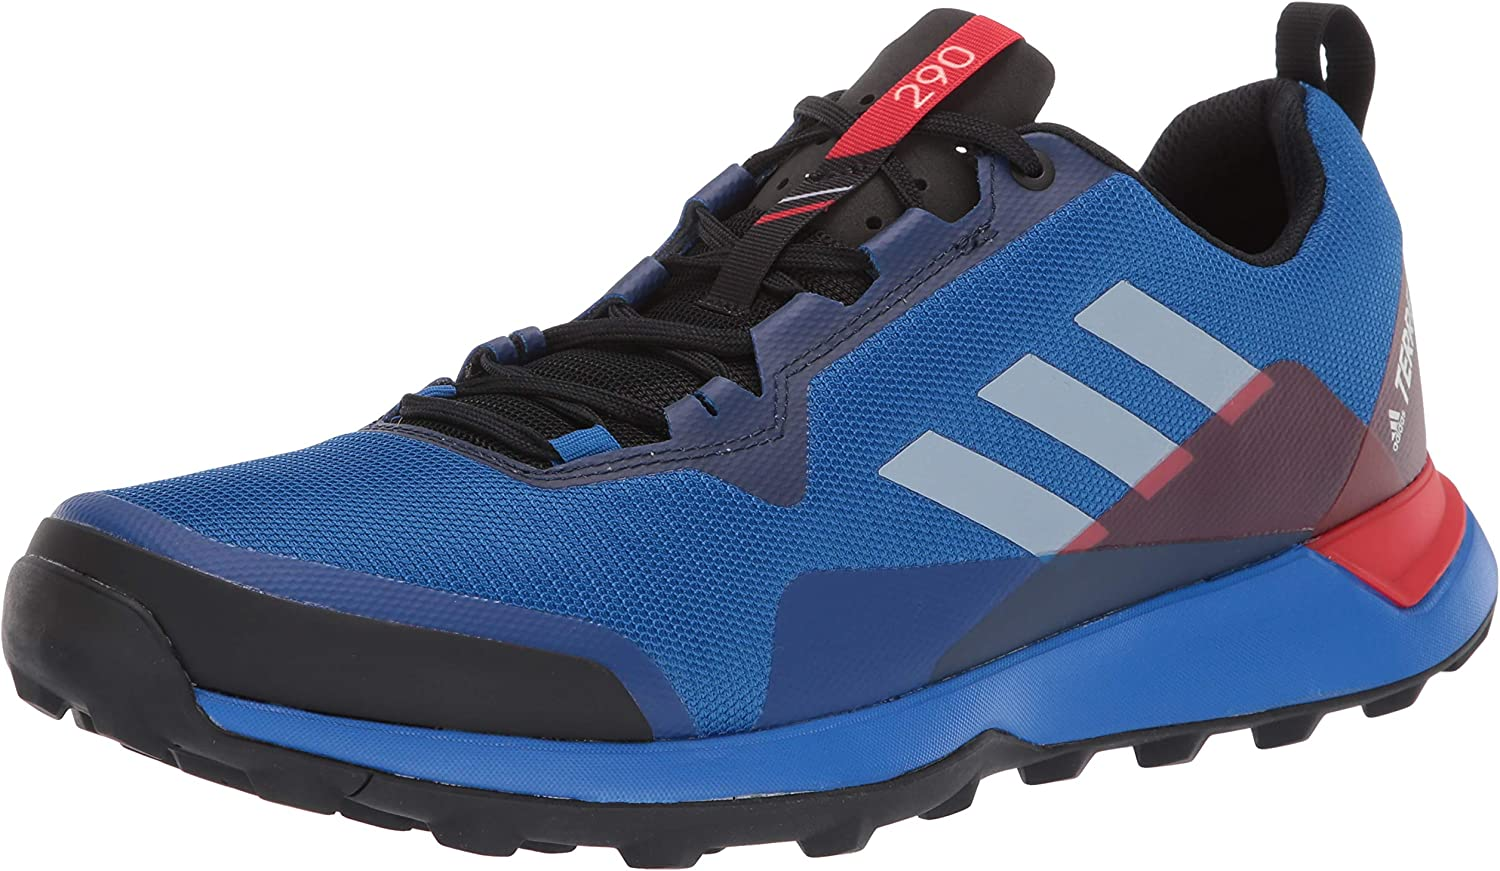 adidas outdoor Men s Terrex CMTK Walking Shoe